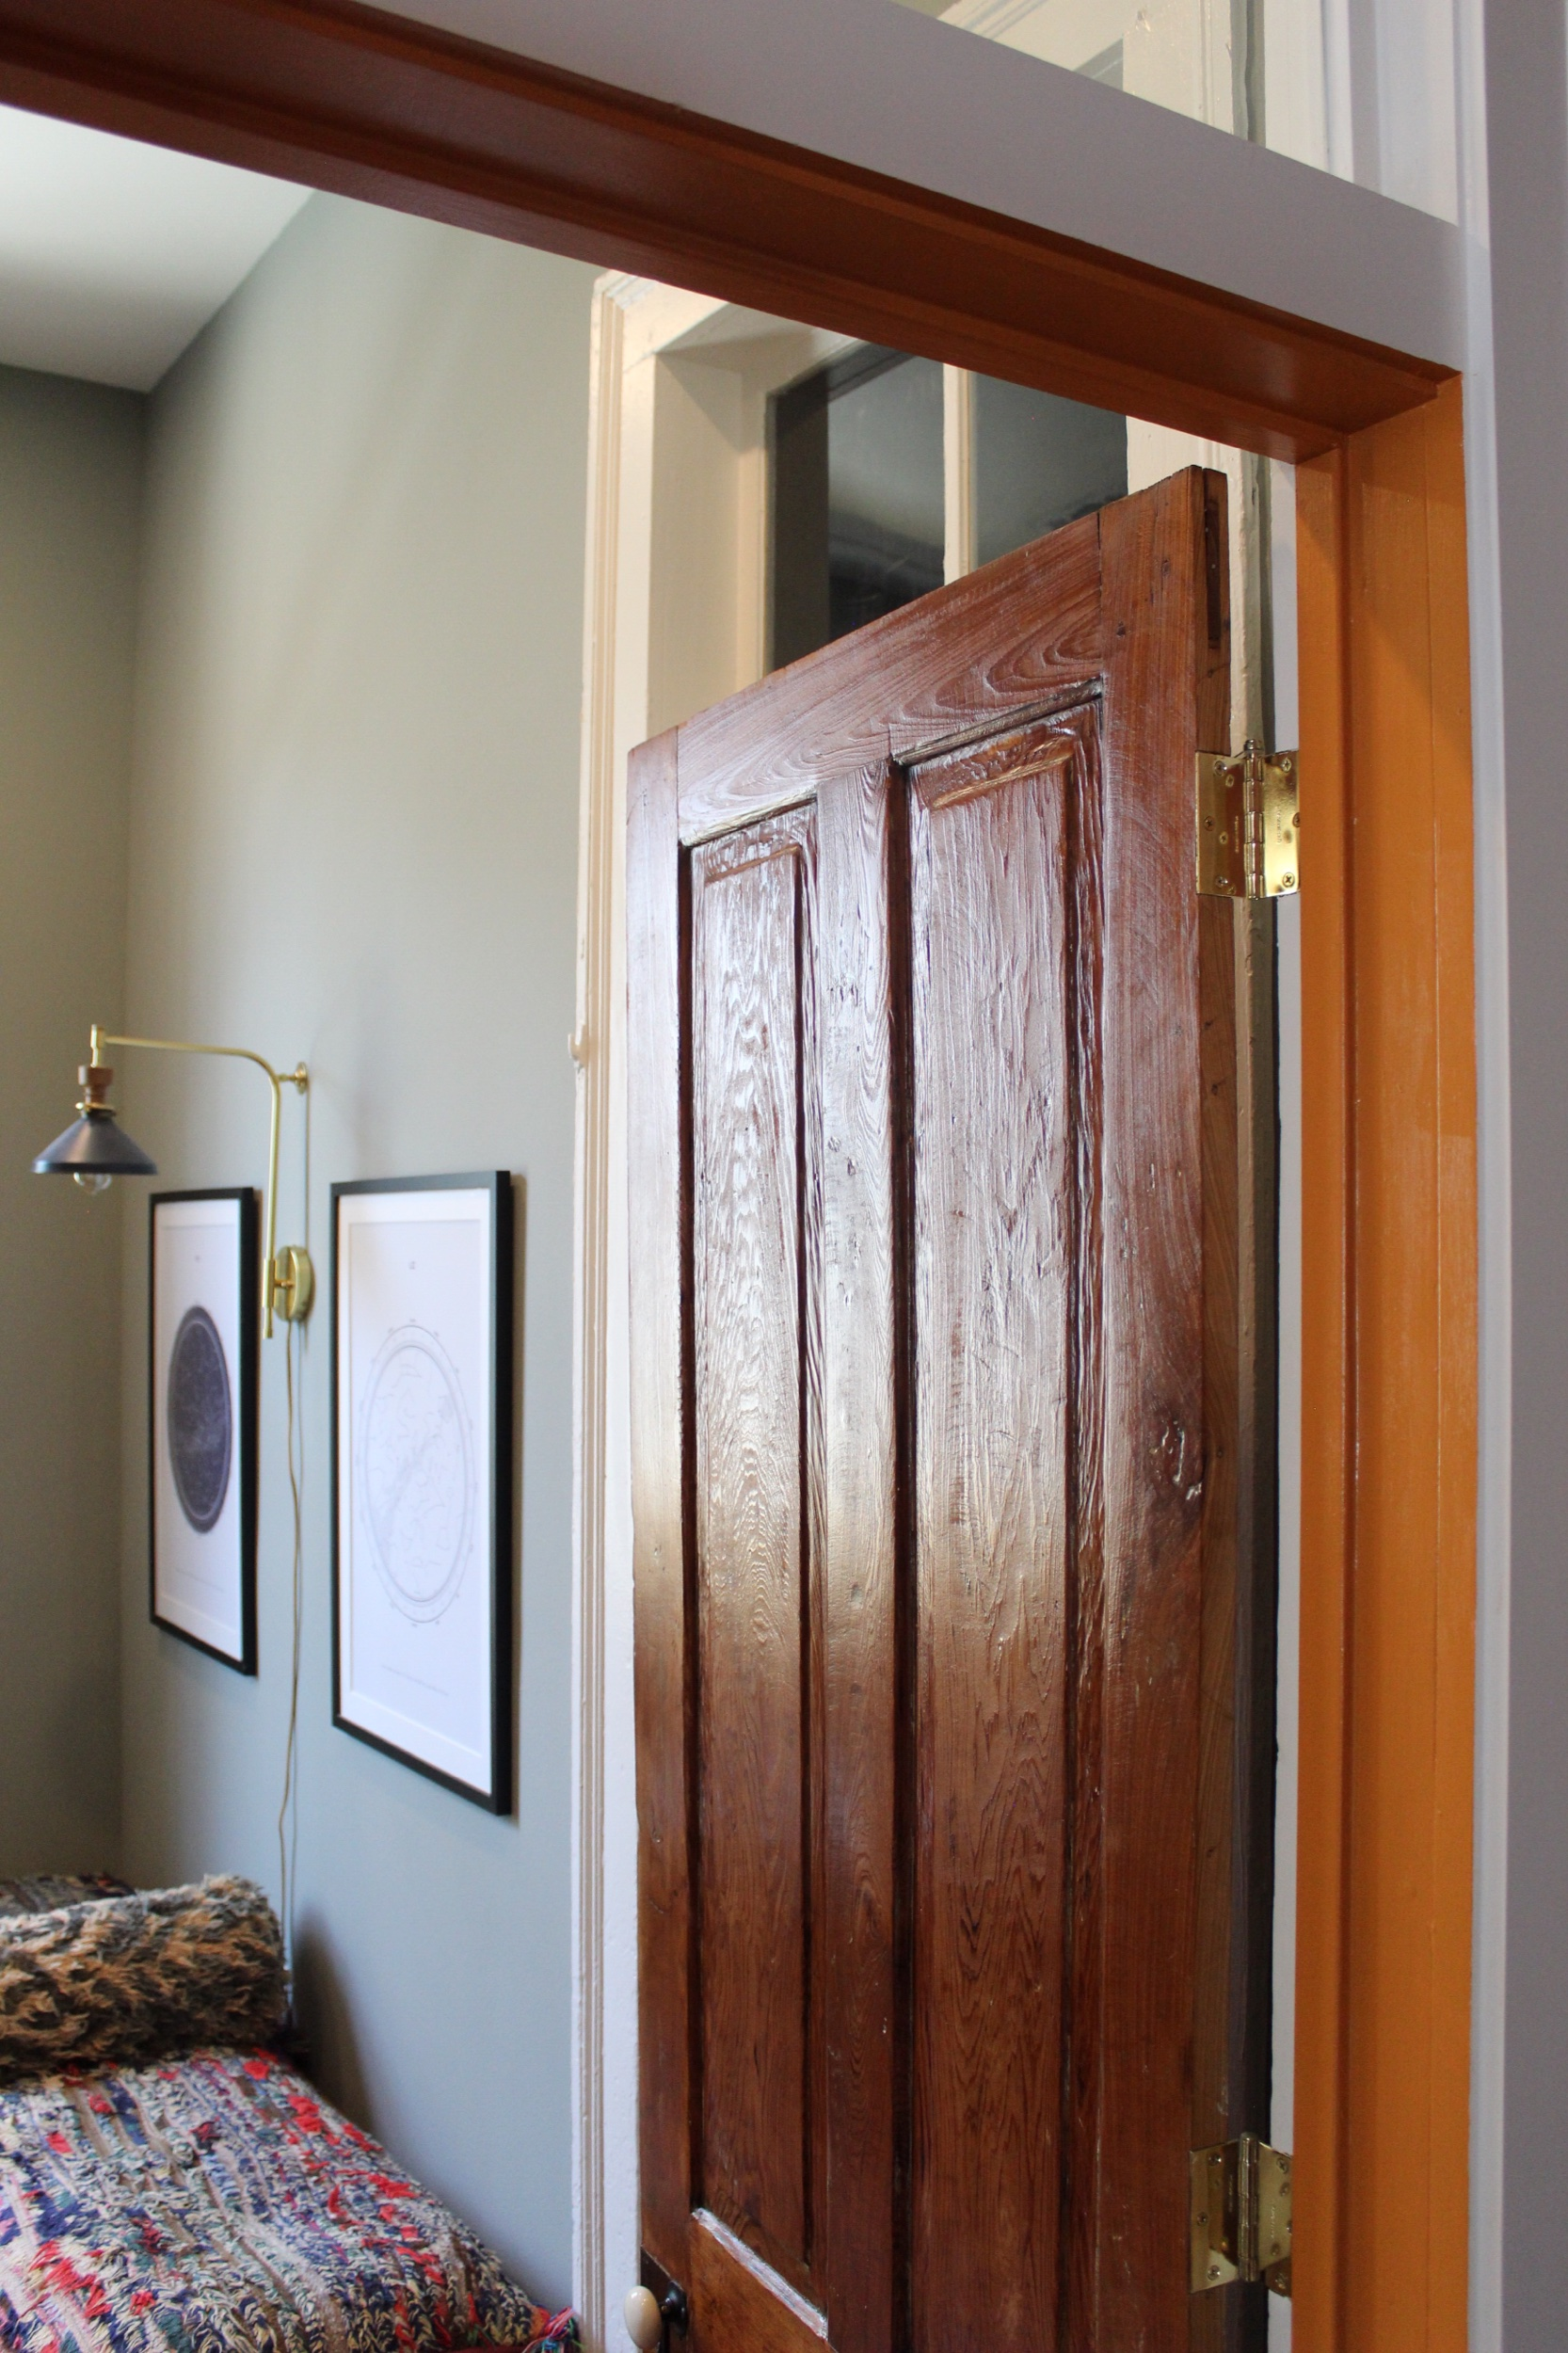 One of my favorite details in here is the orange accent in the door frame.